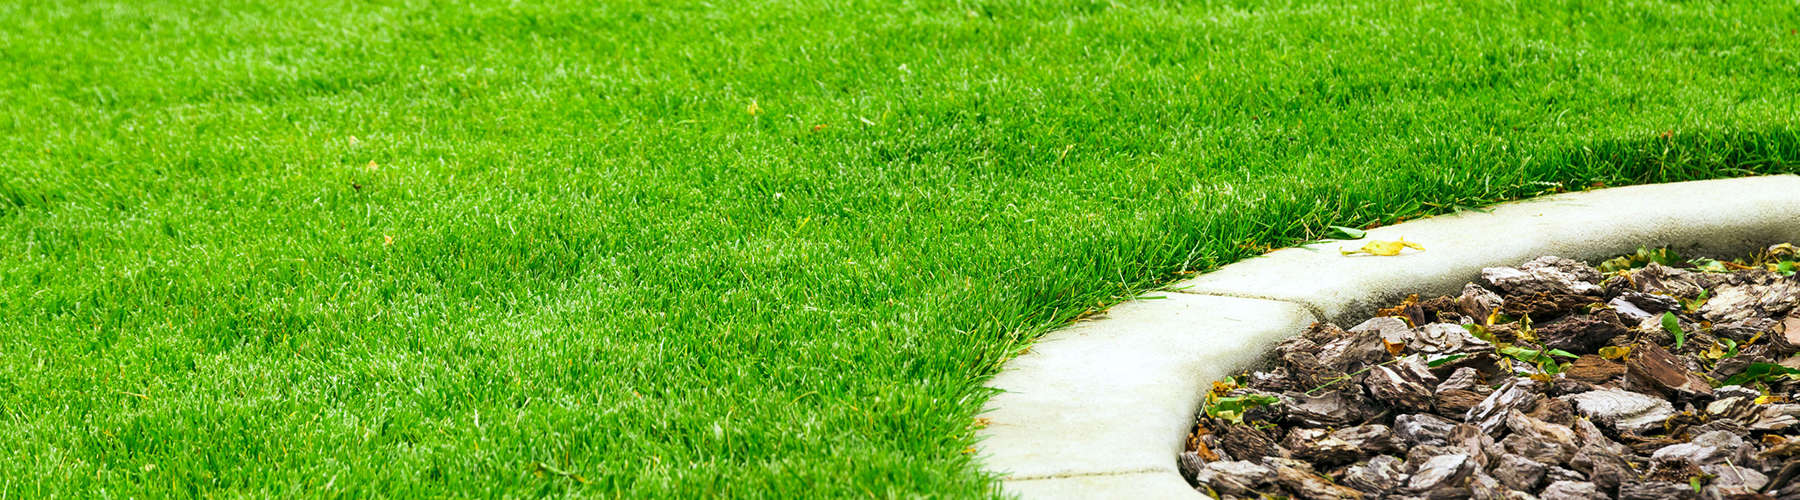 lawn care and maintenance projects